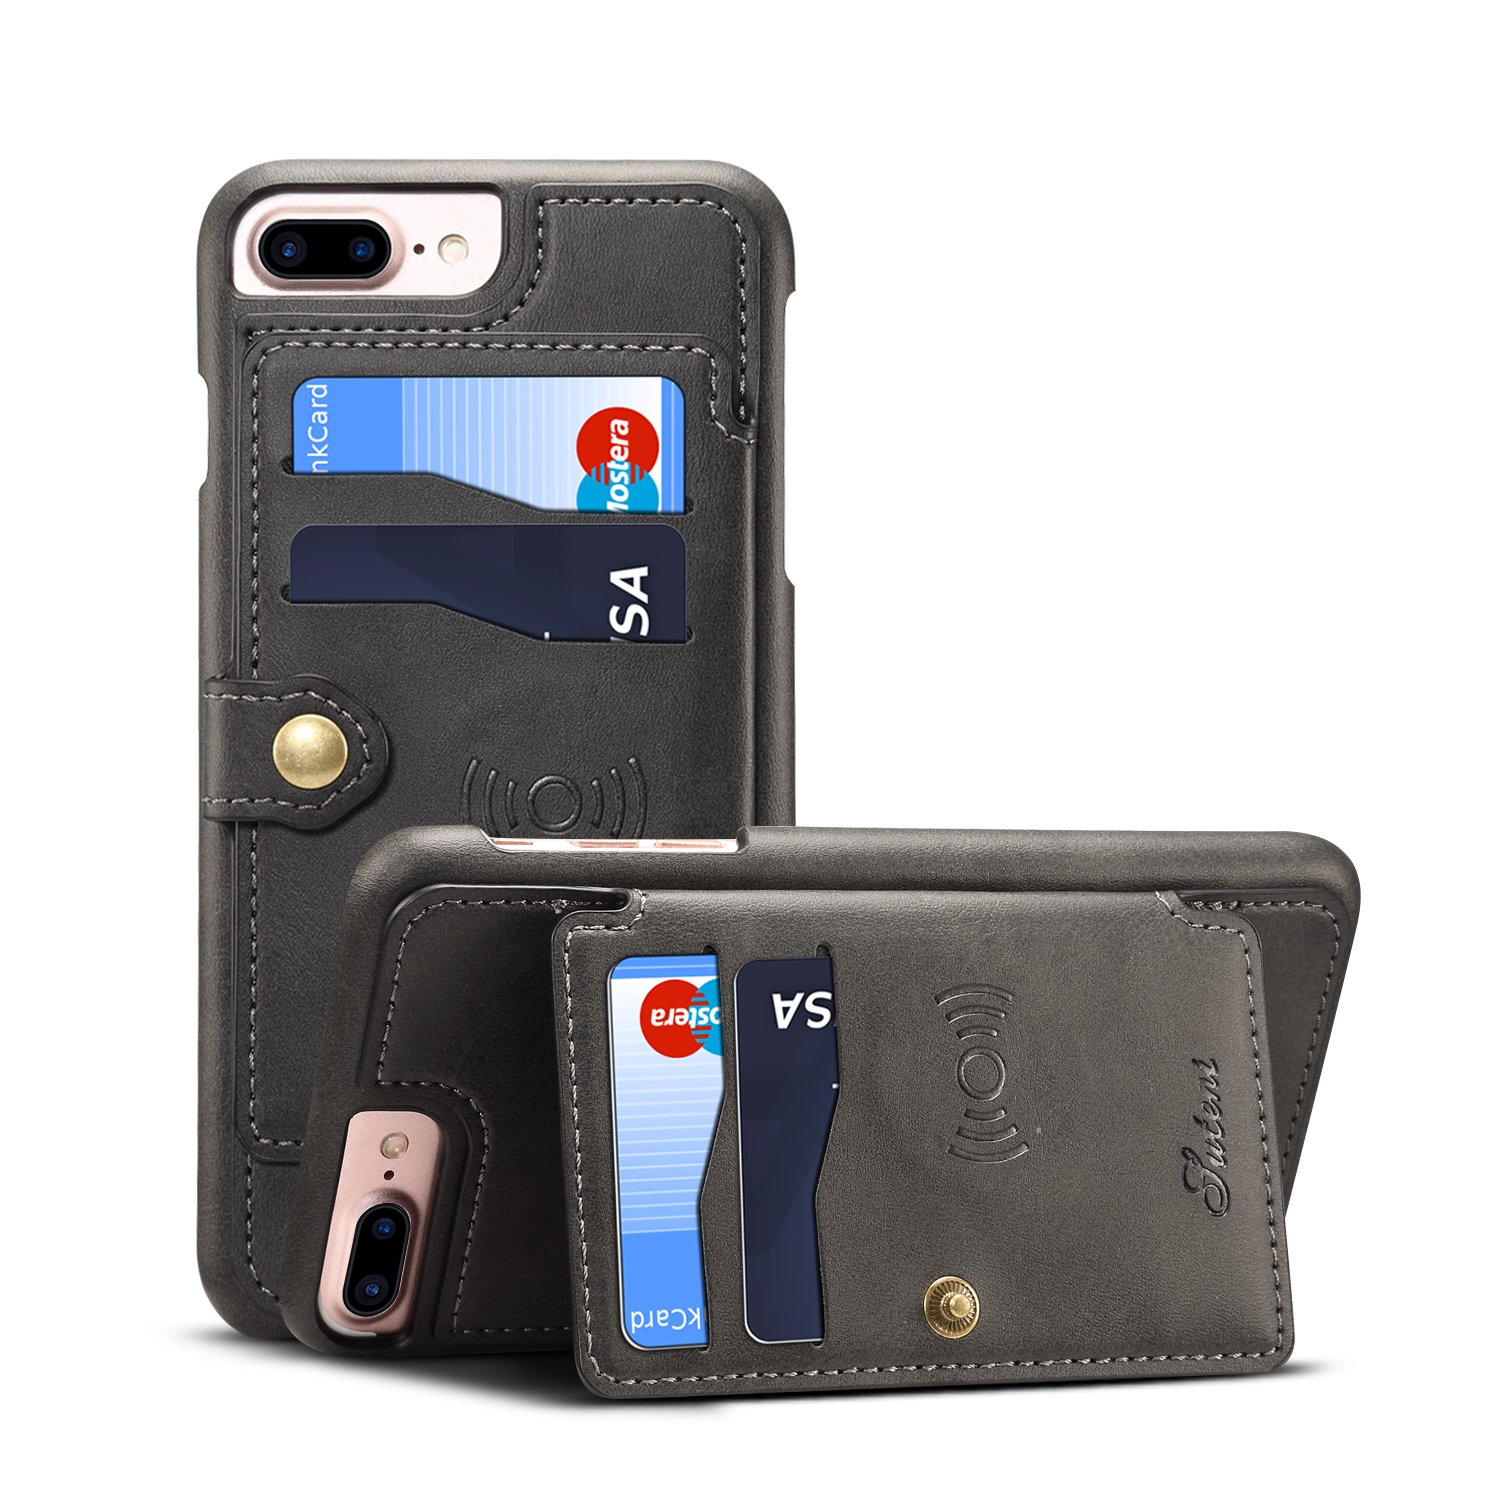 Leather Case for iPhone 6+ 7P 8 Plus Apple,Card Holder Pocket Kickstand Quality Sticking Protective Slim Soft Wallet Cover Shell-Black by TACOO